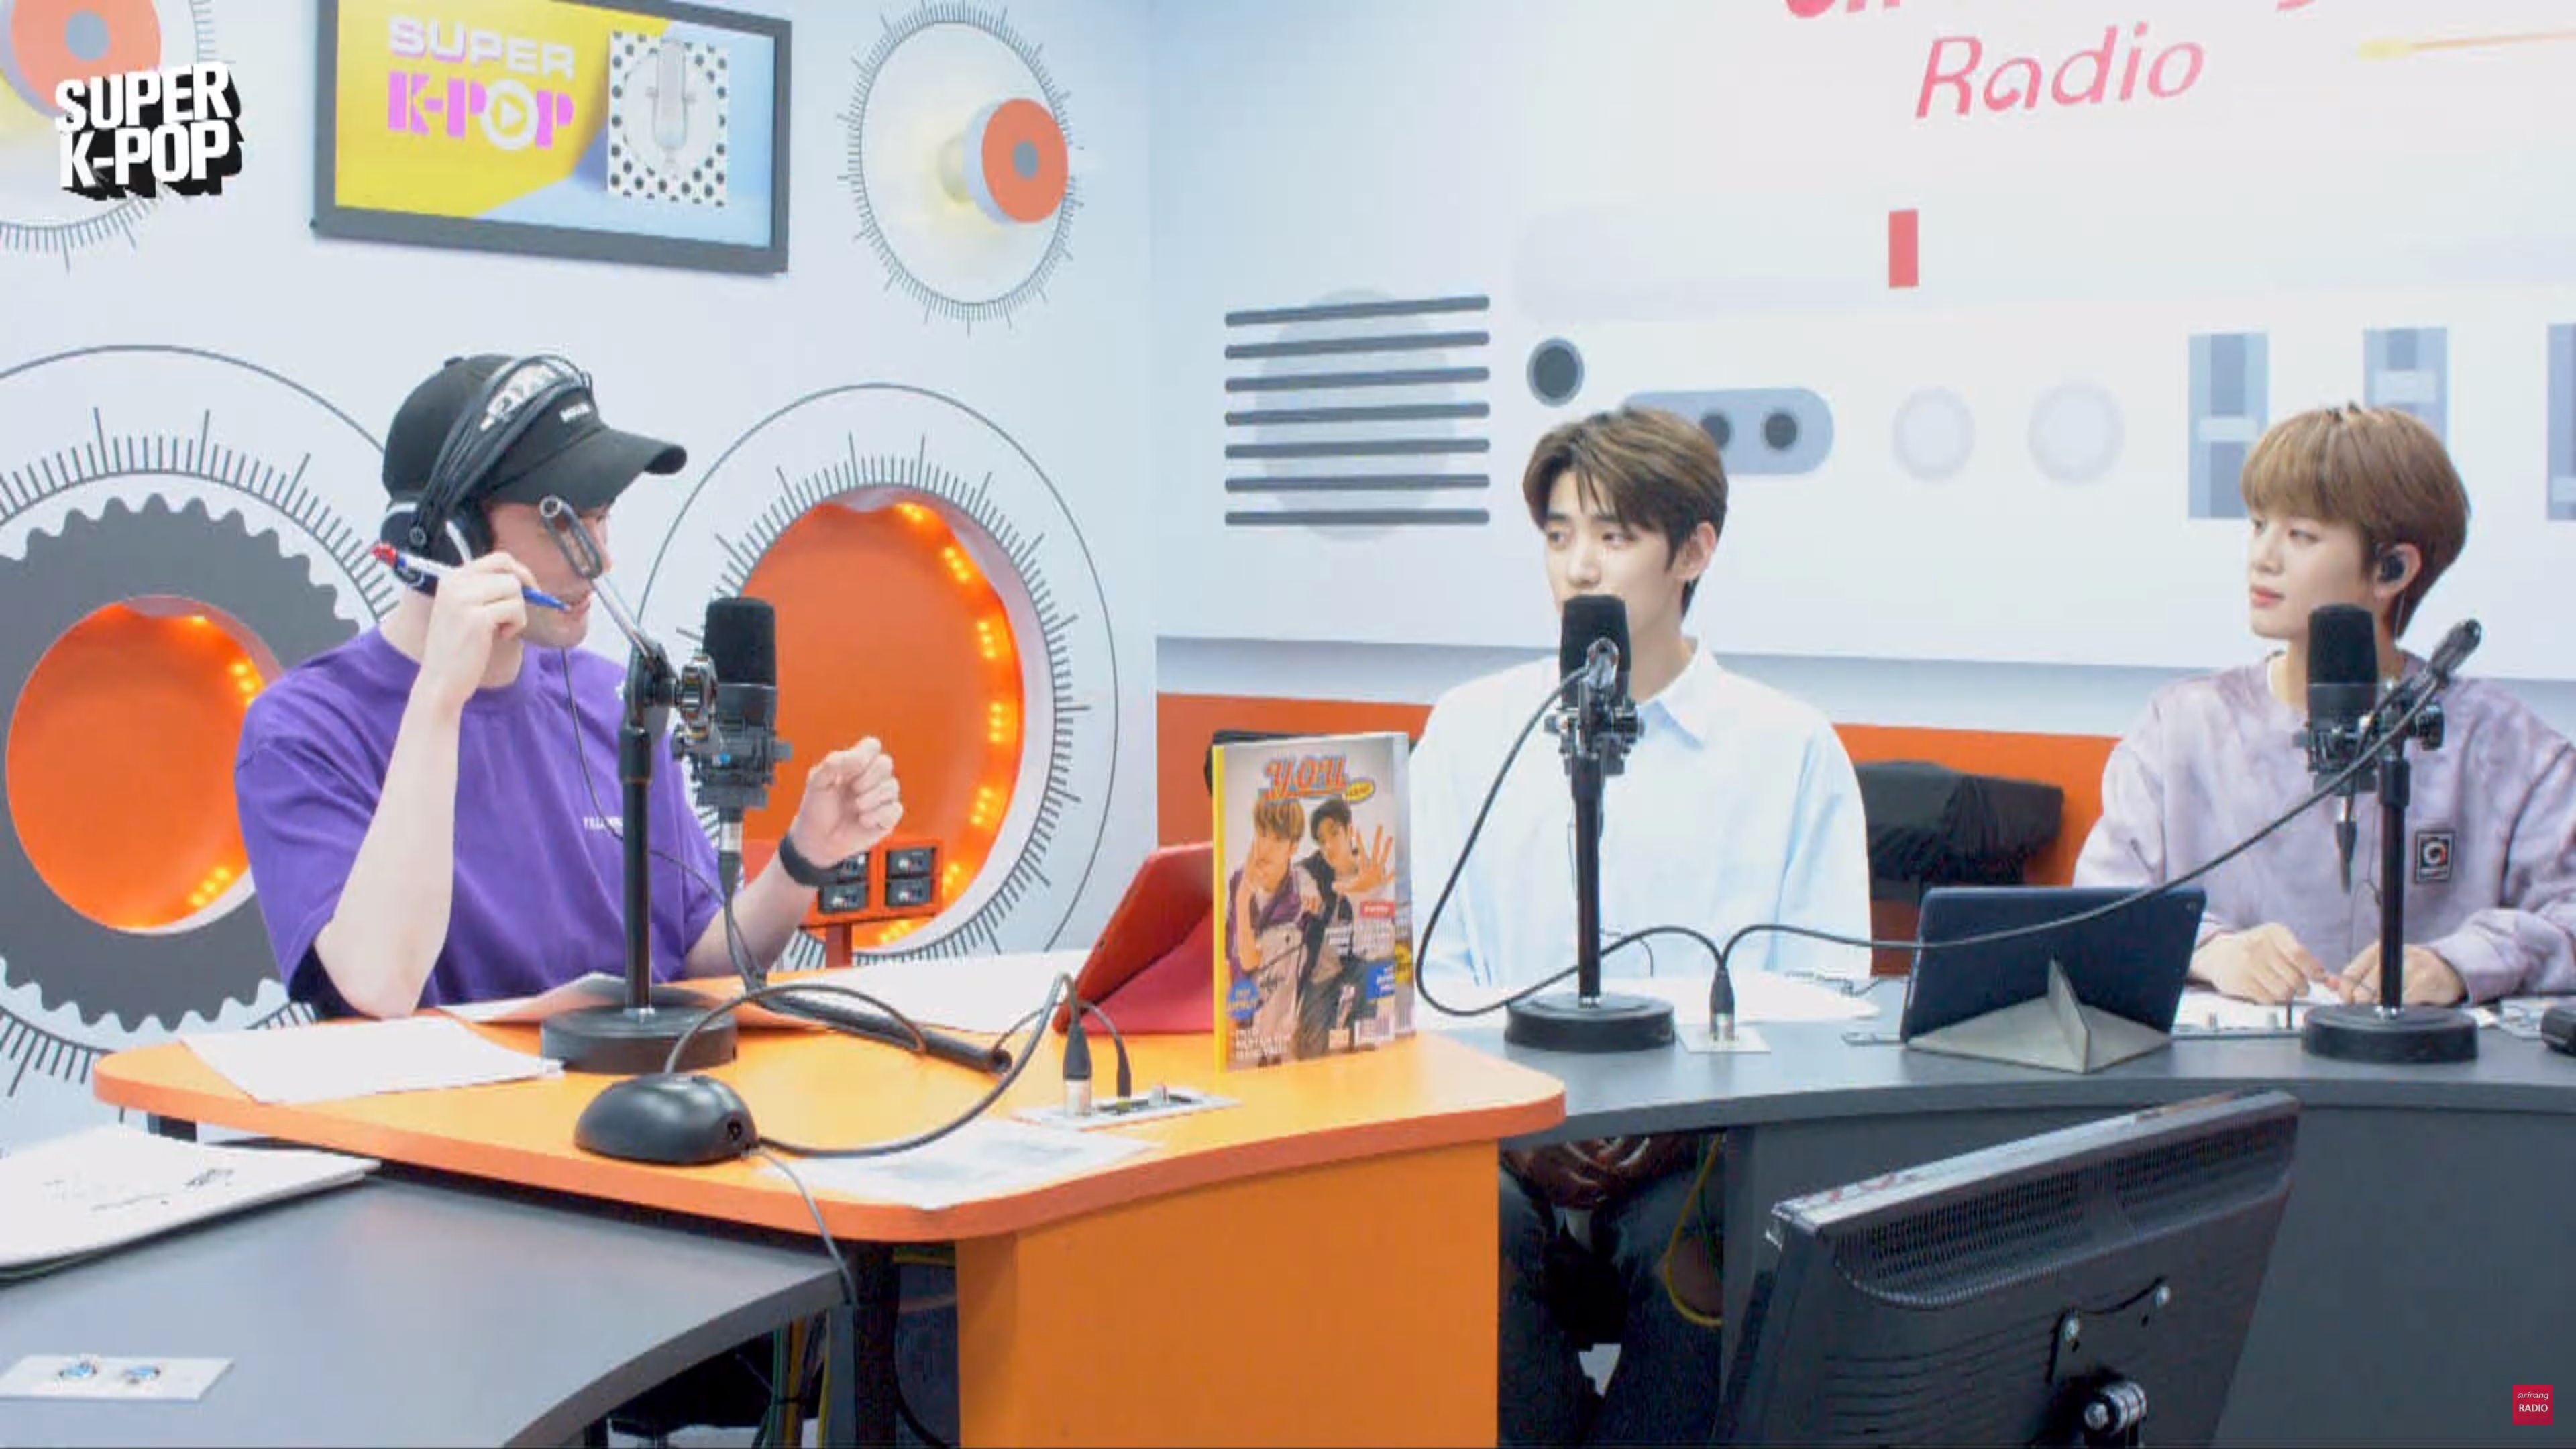 [Super K-Pop] DONGKIZ I:KAN (동키즈 아이캔)'s Full Episode on Arirang Radio!